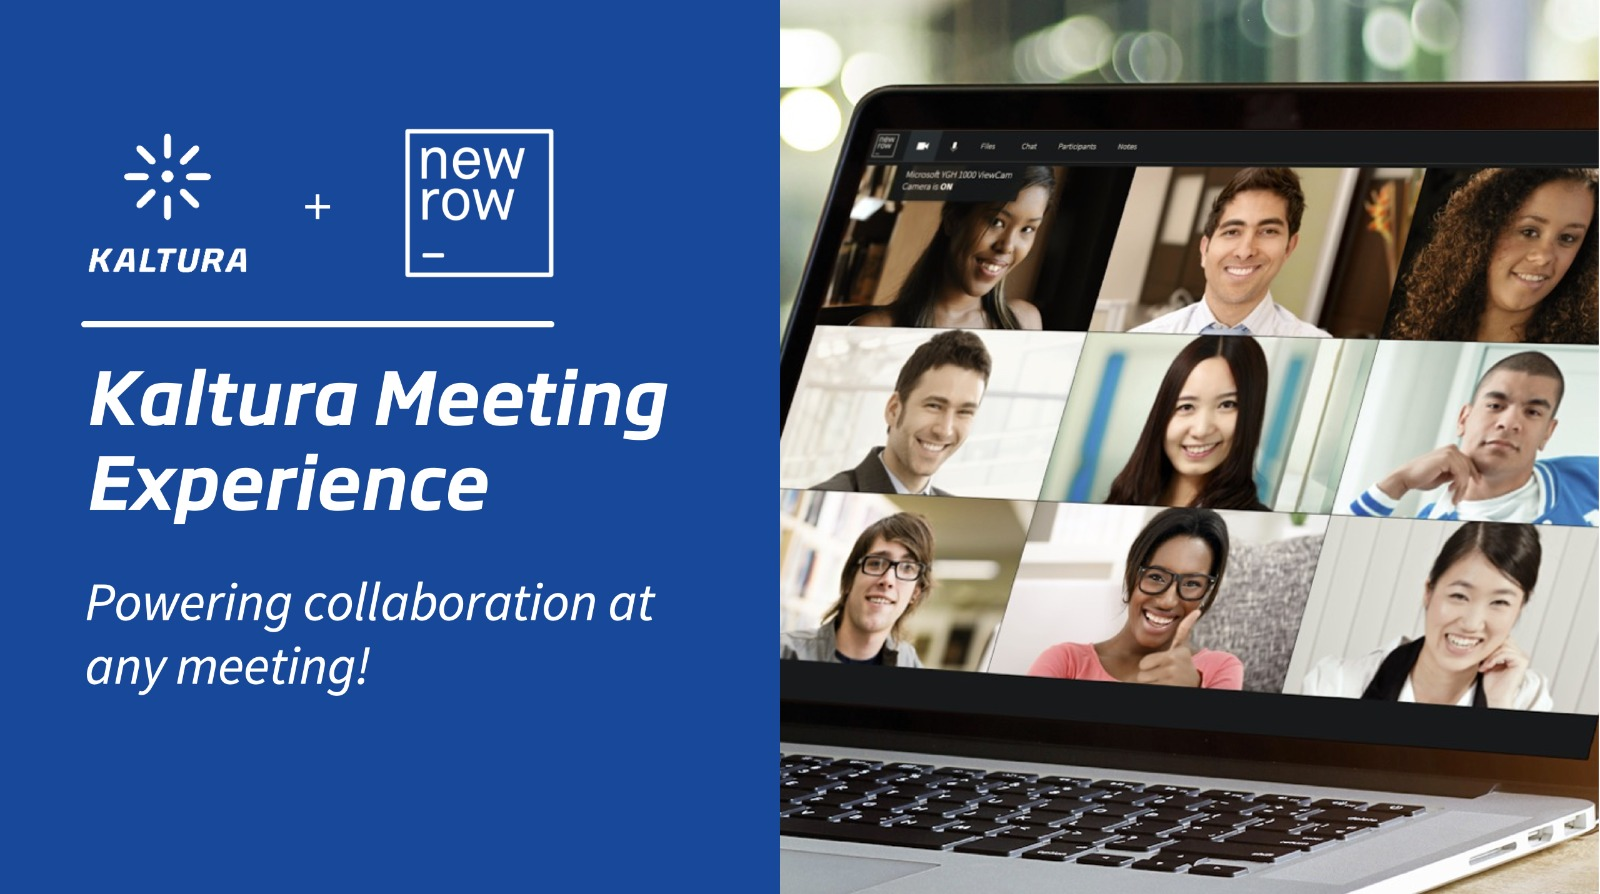 Kaltura Acquires Newrow to Deliver New Meeting Experiences